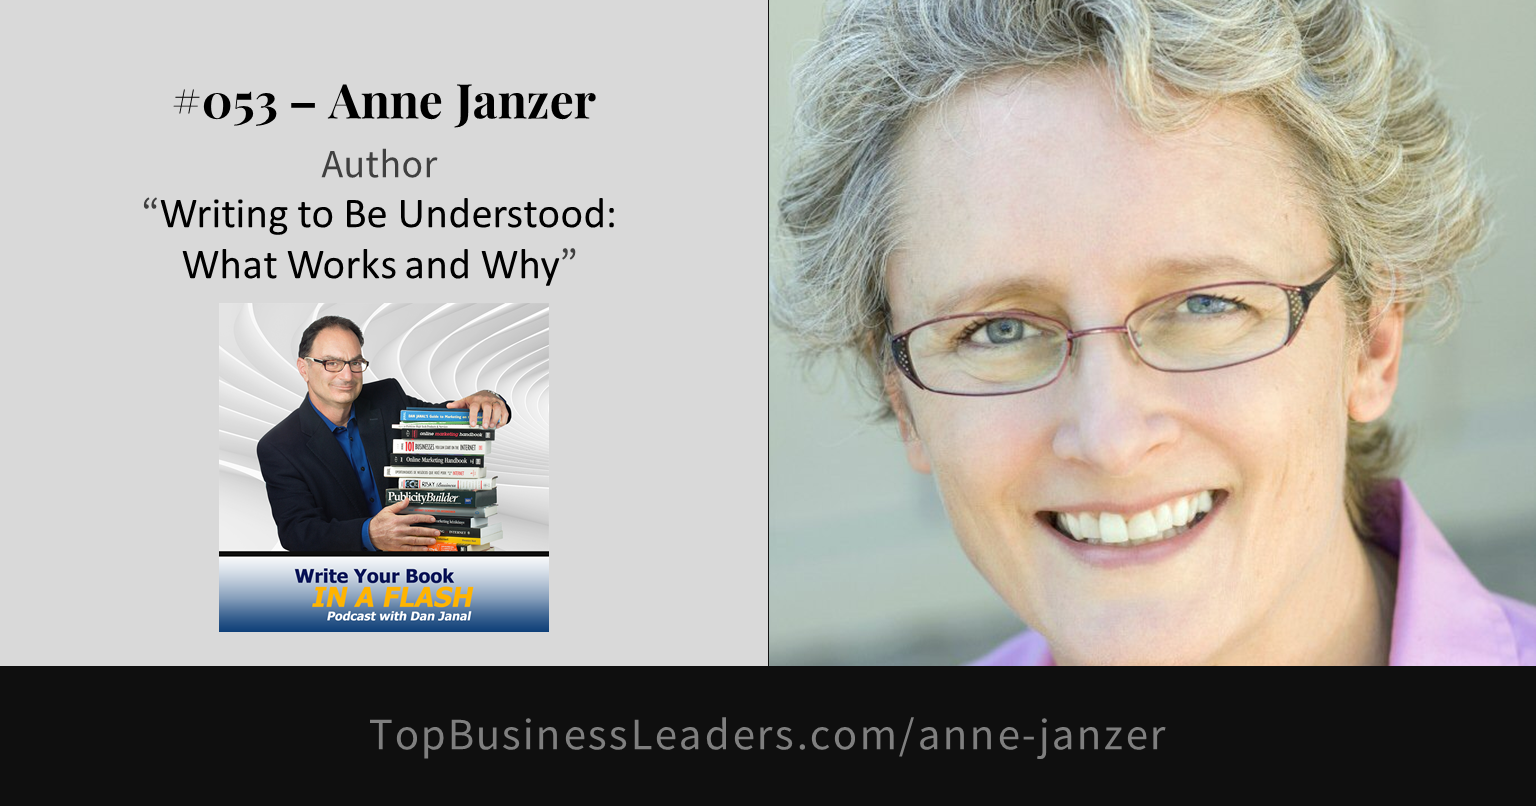 anne-janzer-author-writing-to-be-understood